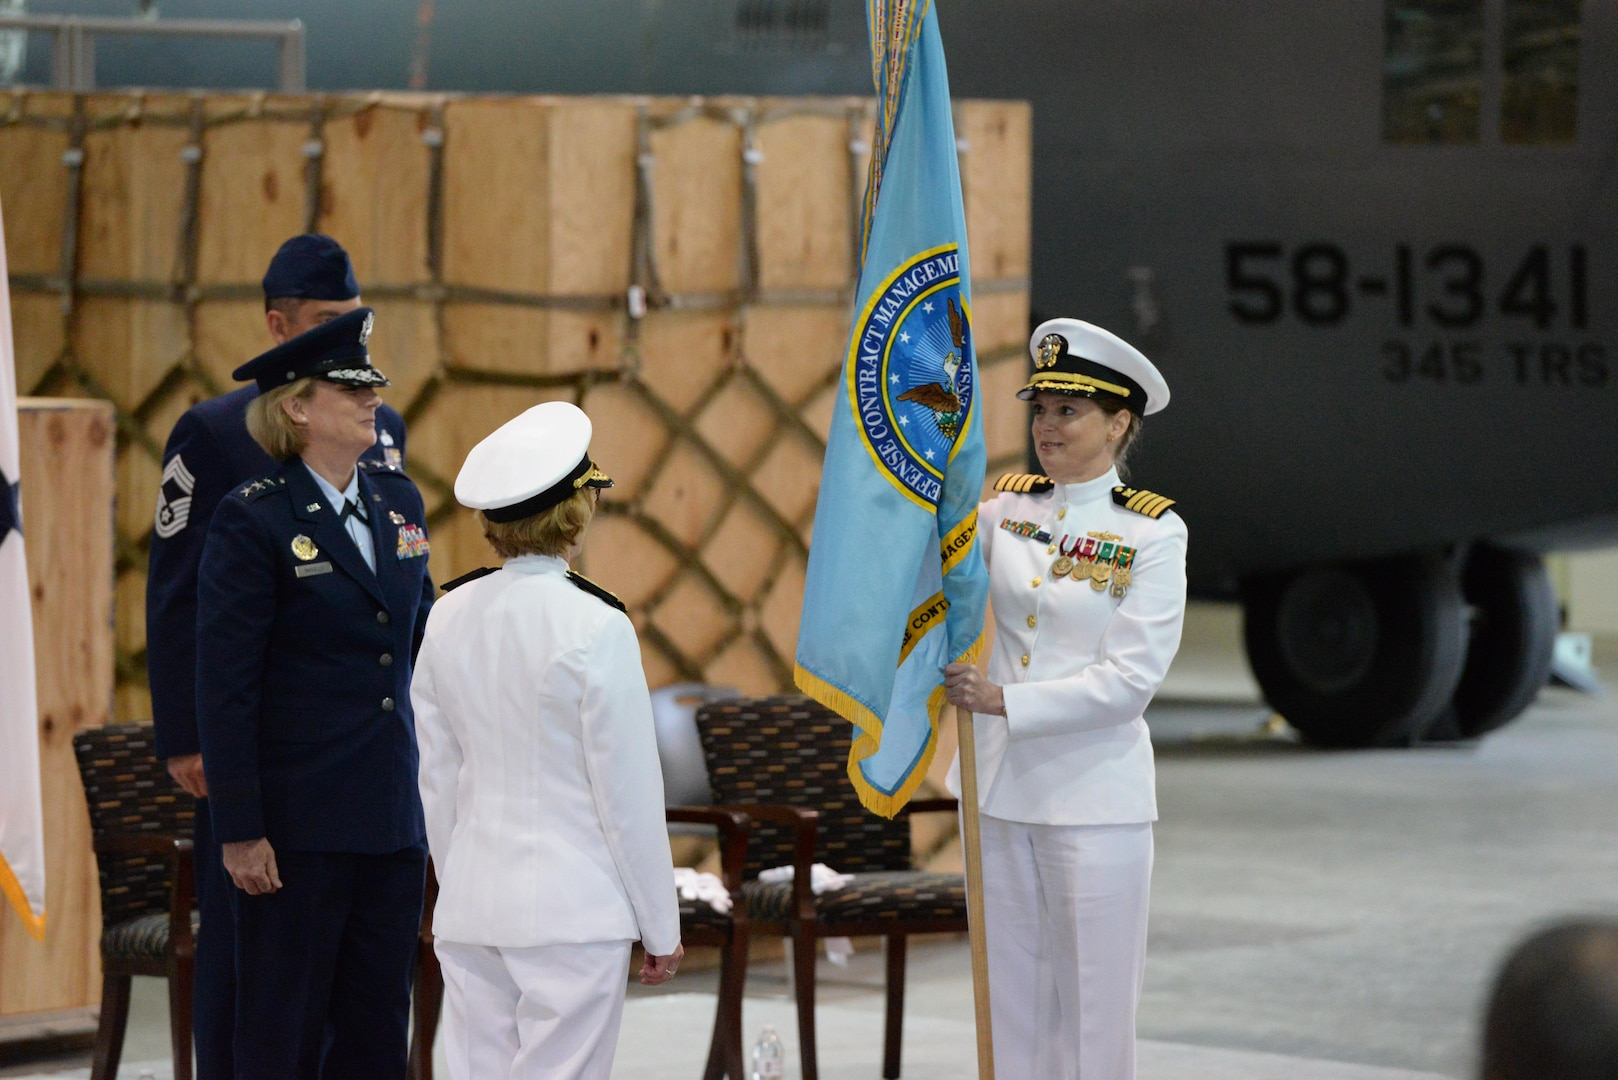 Navy Capt. Sonya Ebright receives the guidon from Navy Rear Adm. Deborah Haven, ceremonially marking the transfer of leadership of Defense Contract Management Agency International during a change of command ceremony at Fort Lee, Virginia, May 23. Ebright assumed command over the agency's international contract administration operations in 26 different countries overseeing 9,600 contracts totaling over $75 billion in program value.